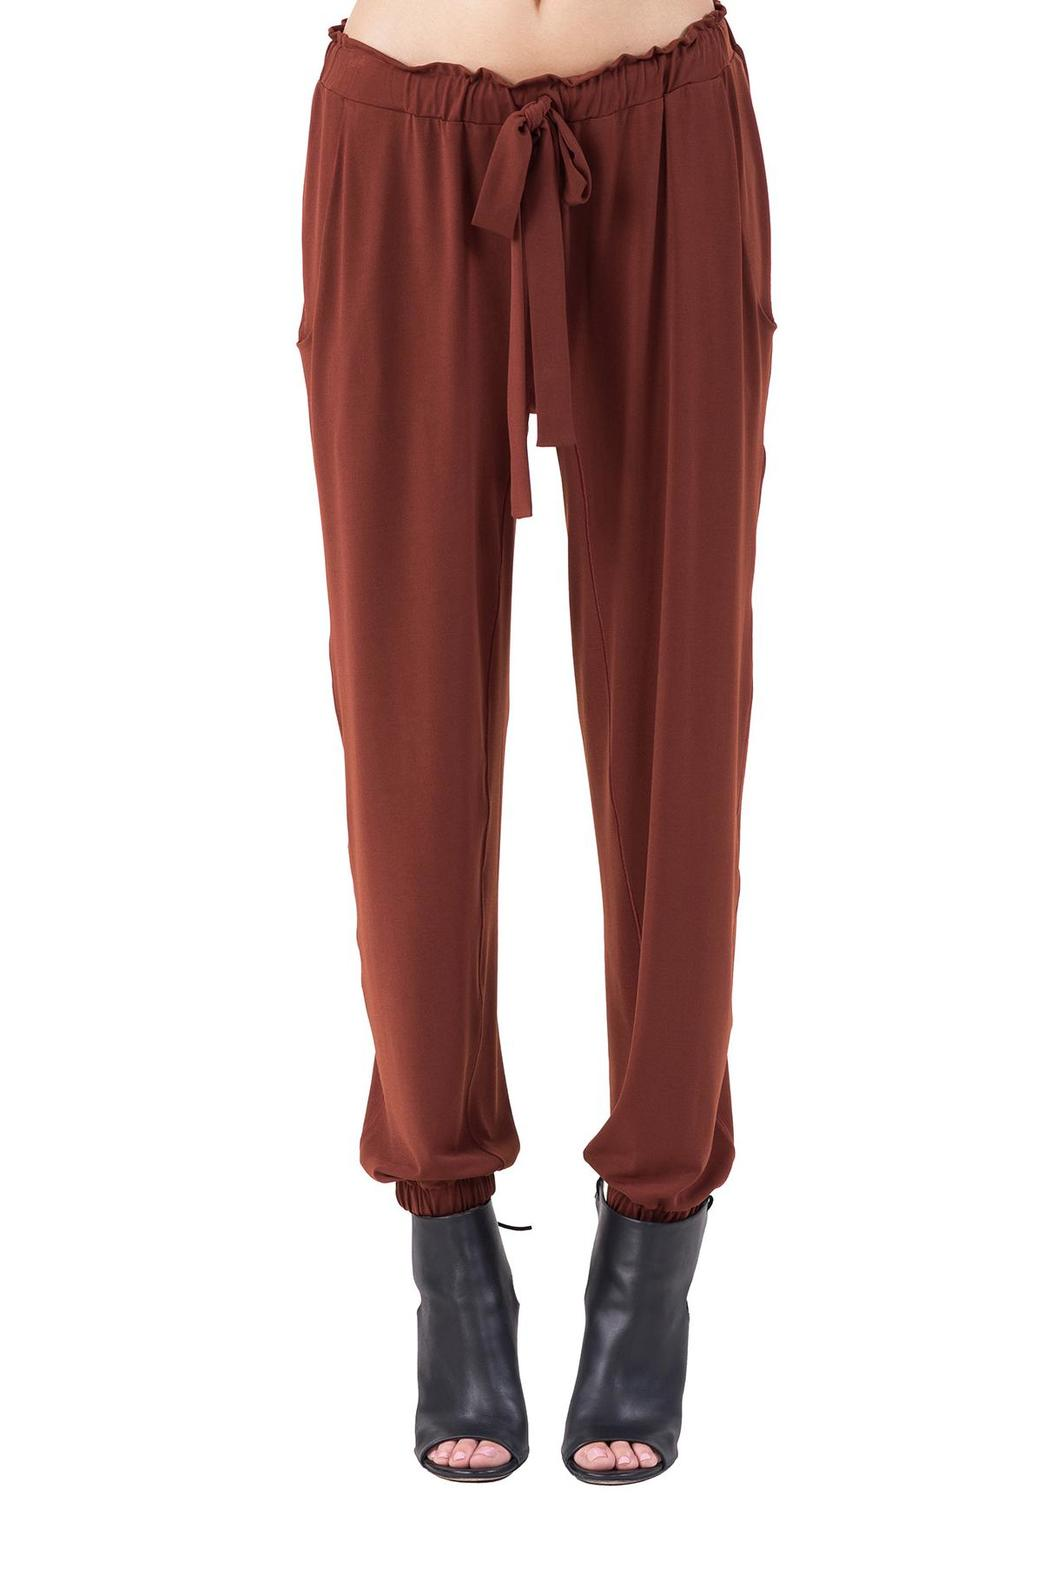 Eva Varro Pocket Tie Front Jogger - Front Cropped Image